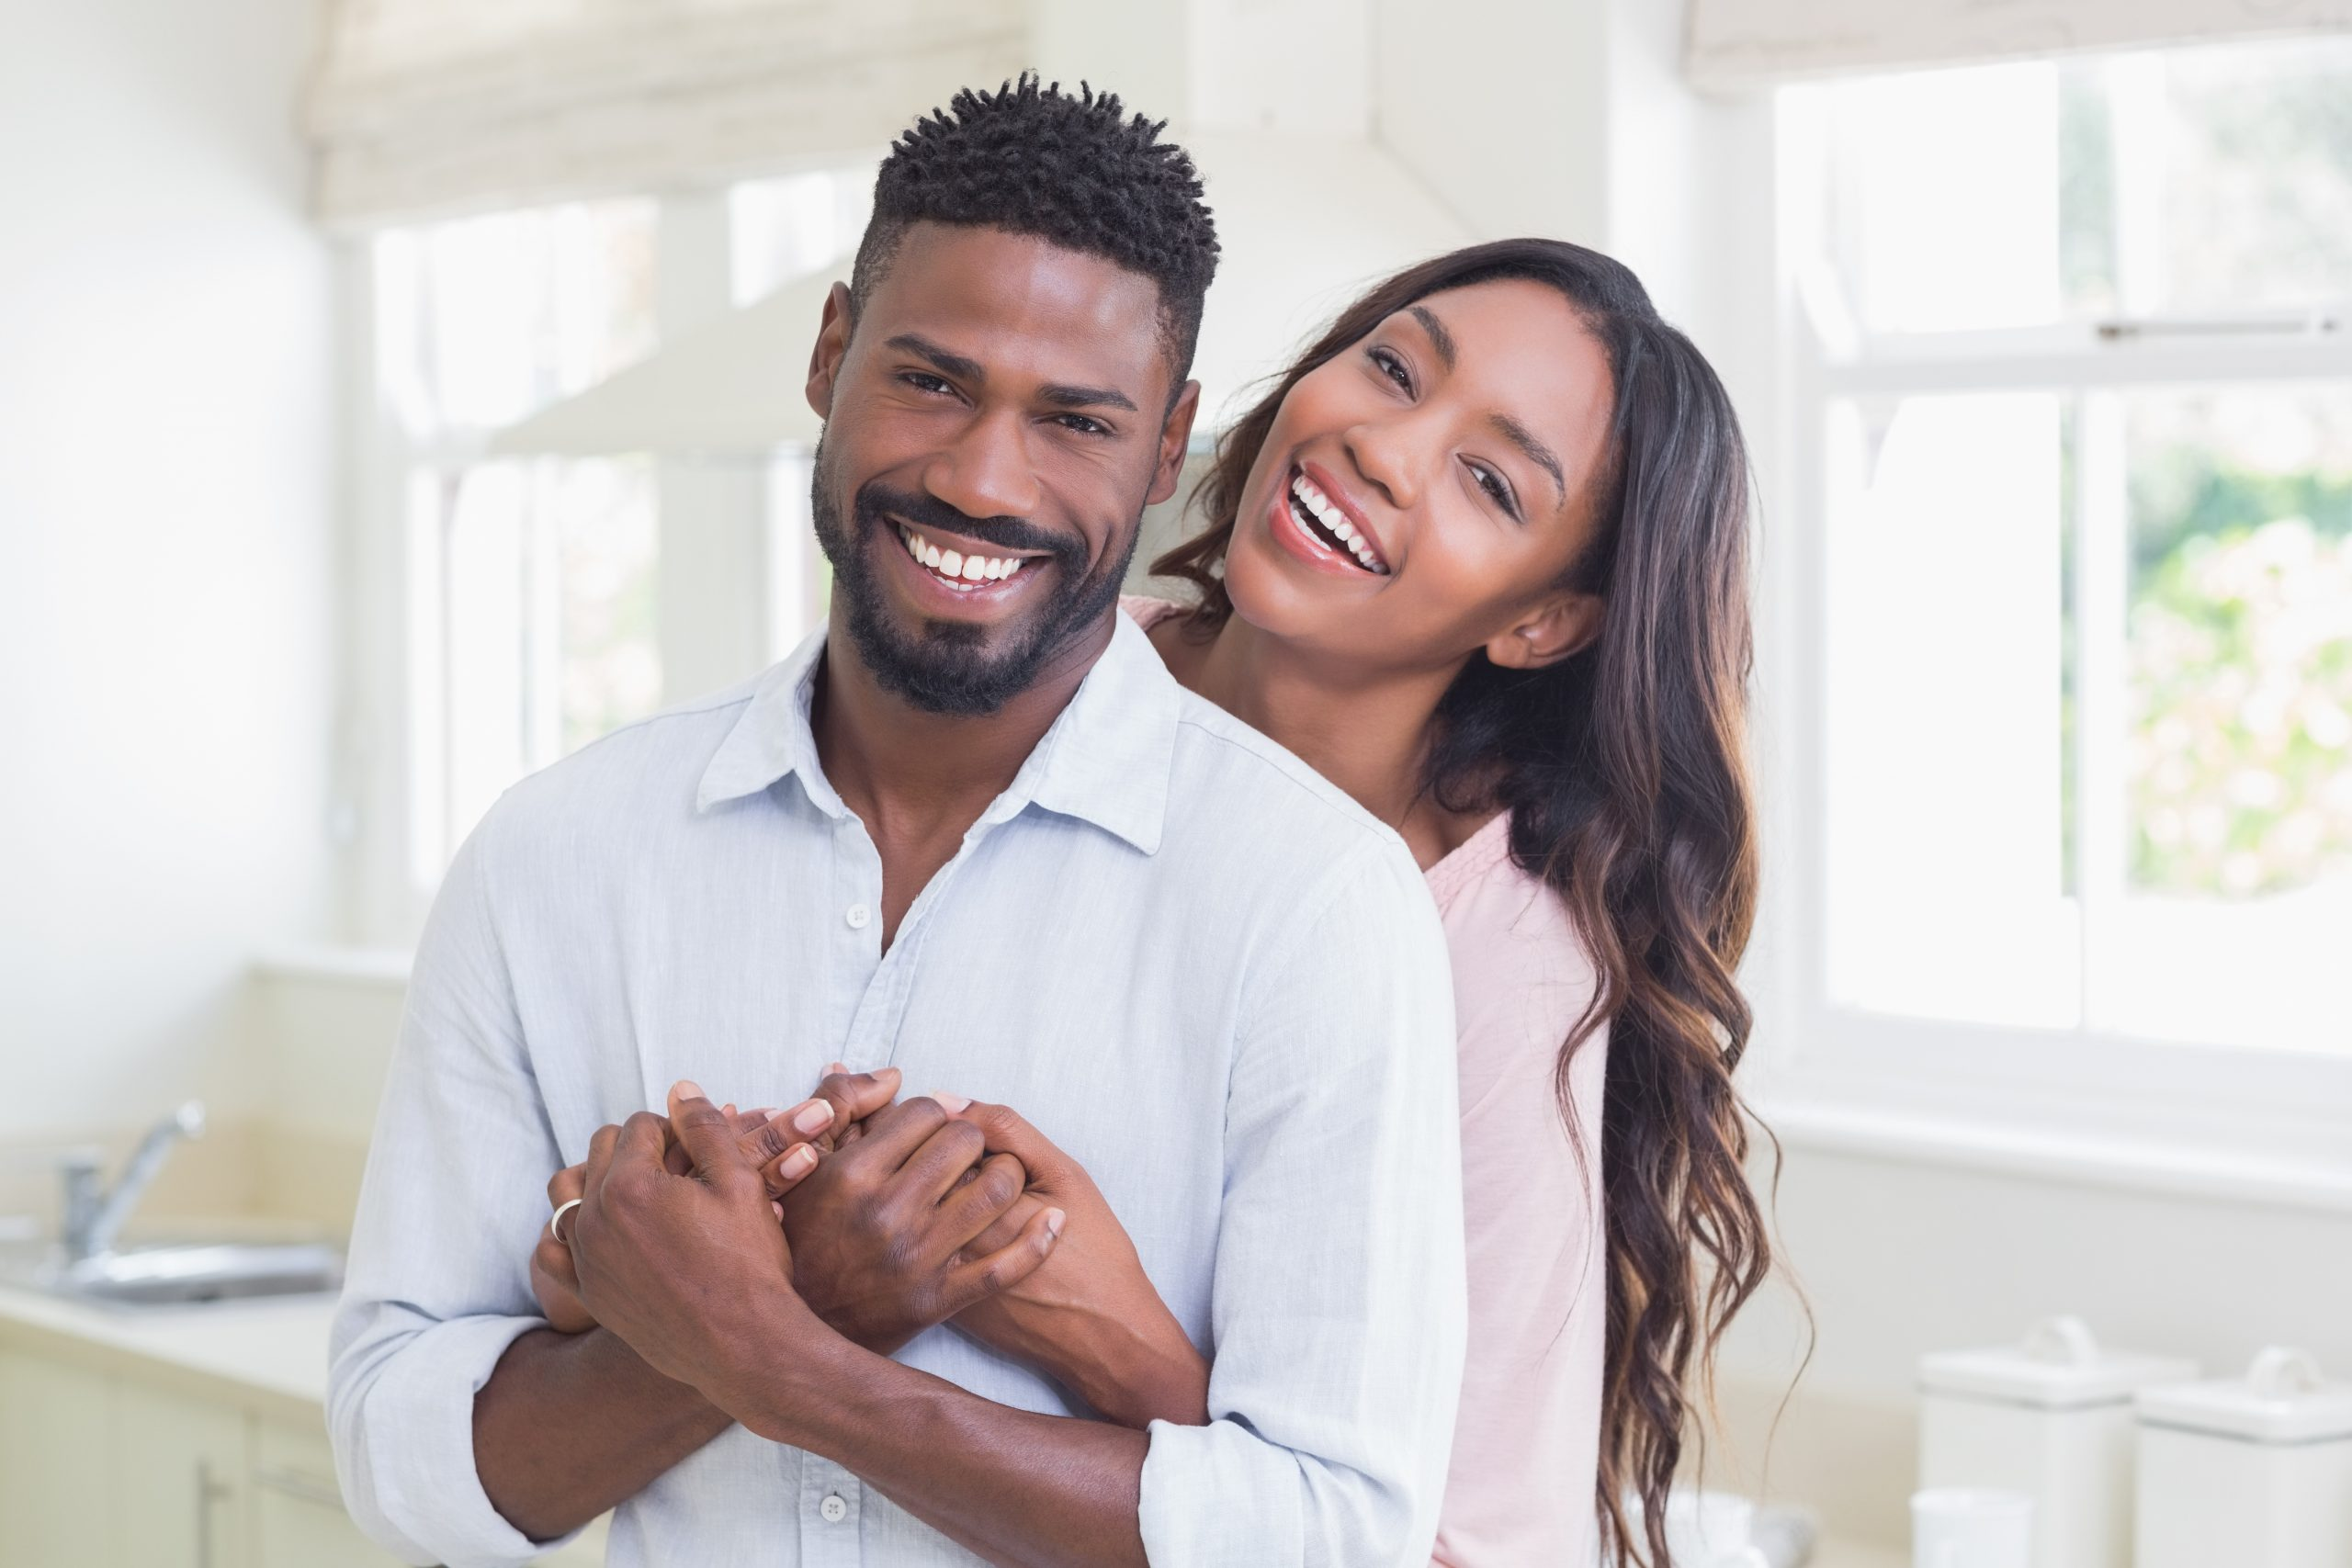 CLEAR WAYS TO IMPROVE YOUR RELATIONSHIP